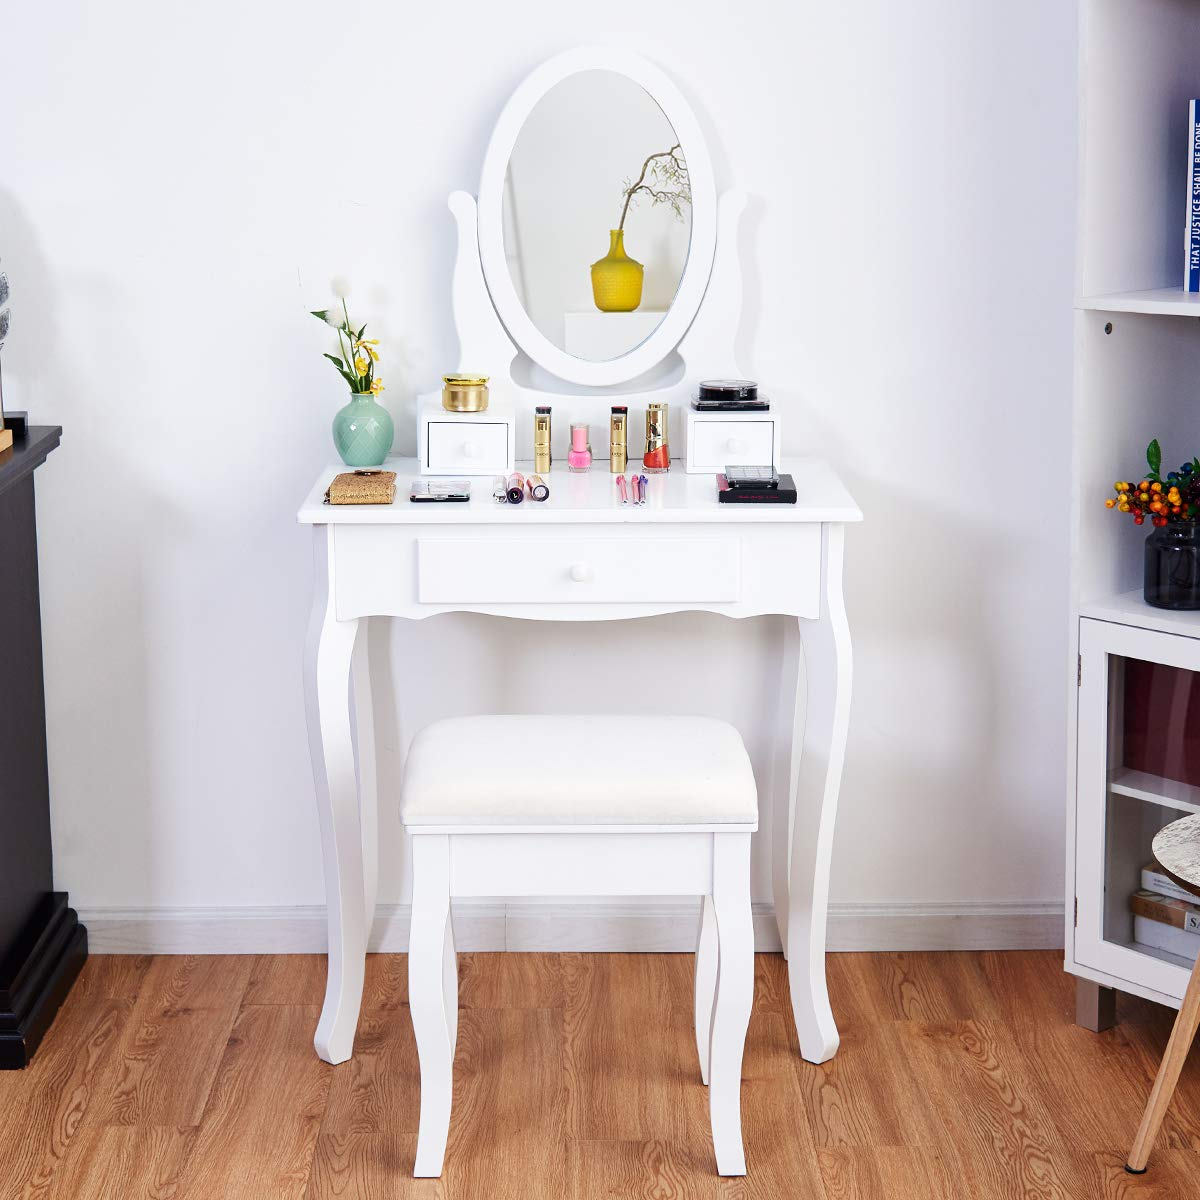 Giantex Vanity Table Set 3 Drawers with Mirror, Cushioned Bench Bathroom Bedroom Wood Room Vanities Removable Top Dual Use Jewelry Makeup Dresser Desk, Dressing Tables w/Stool, White